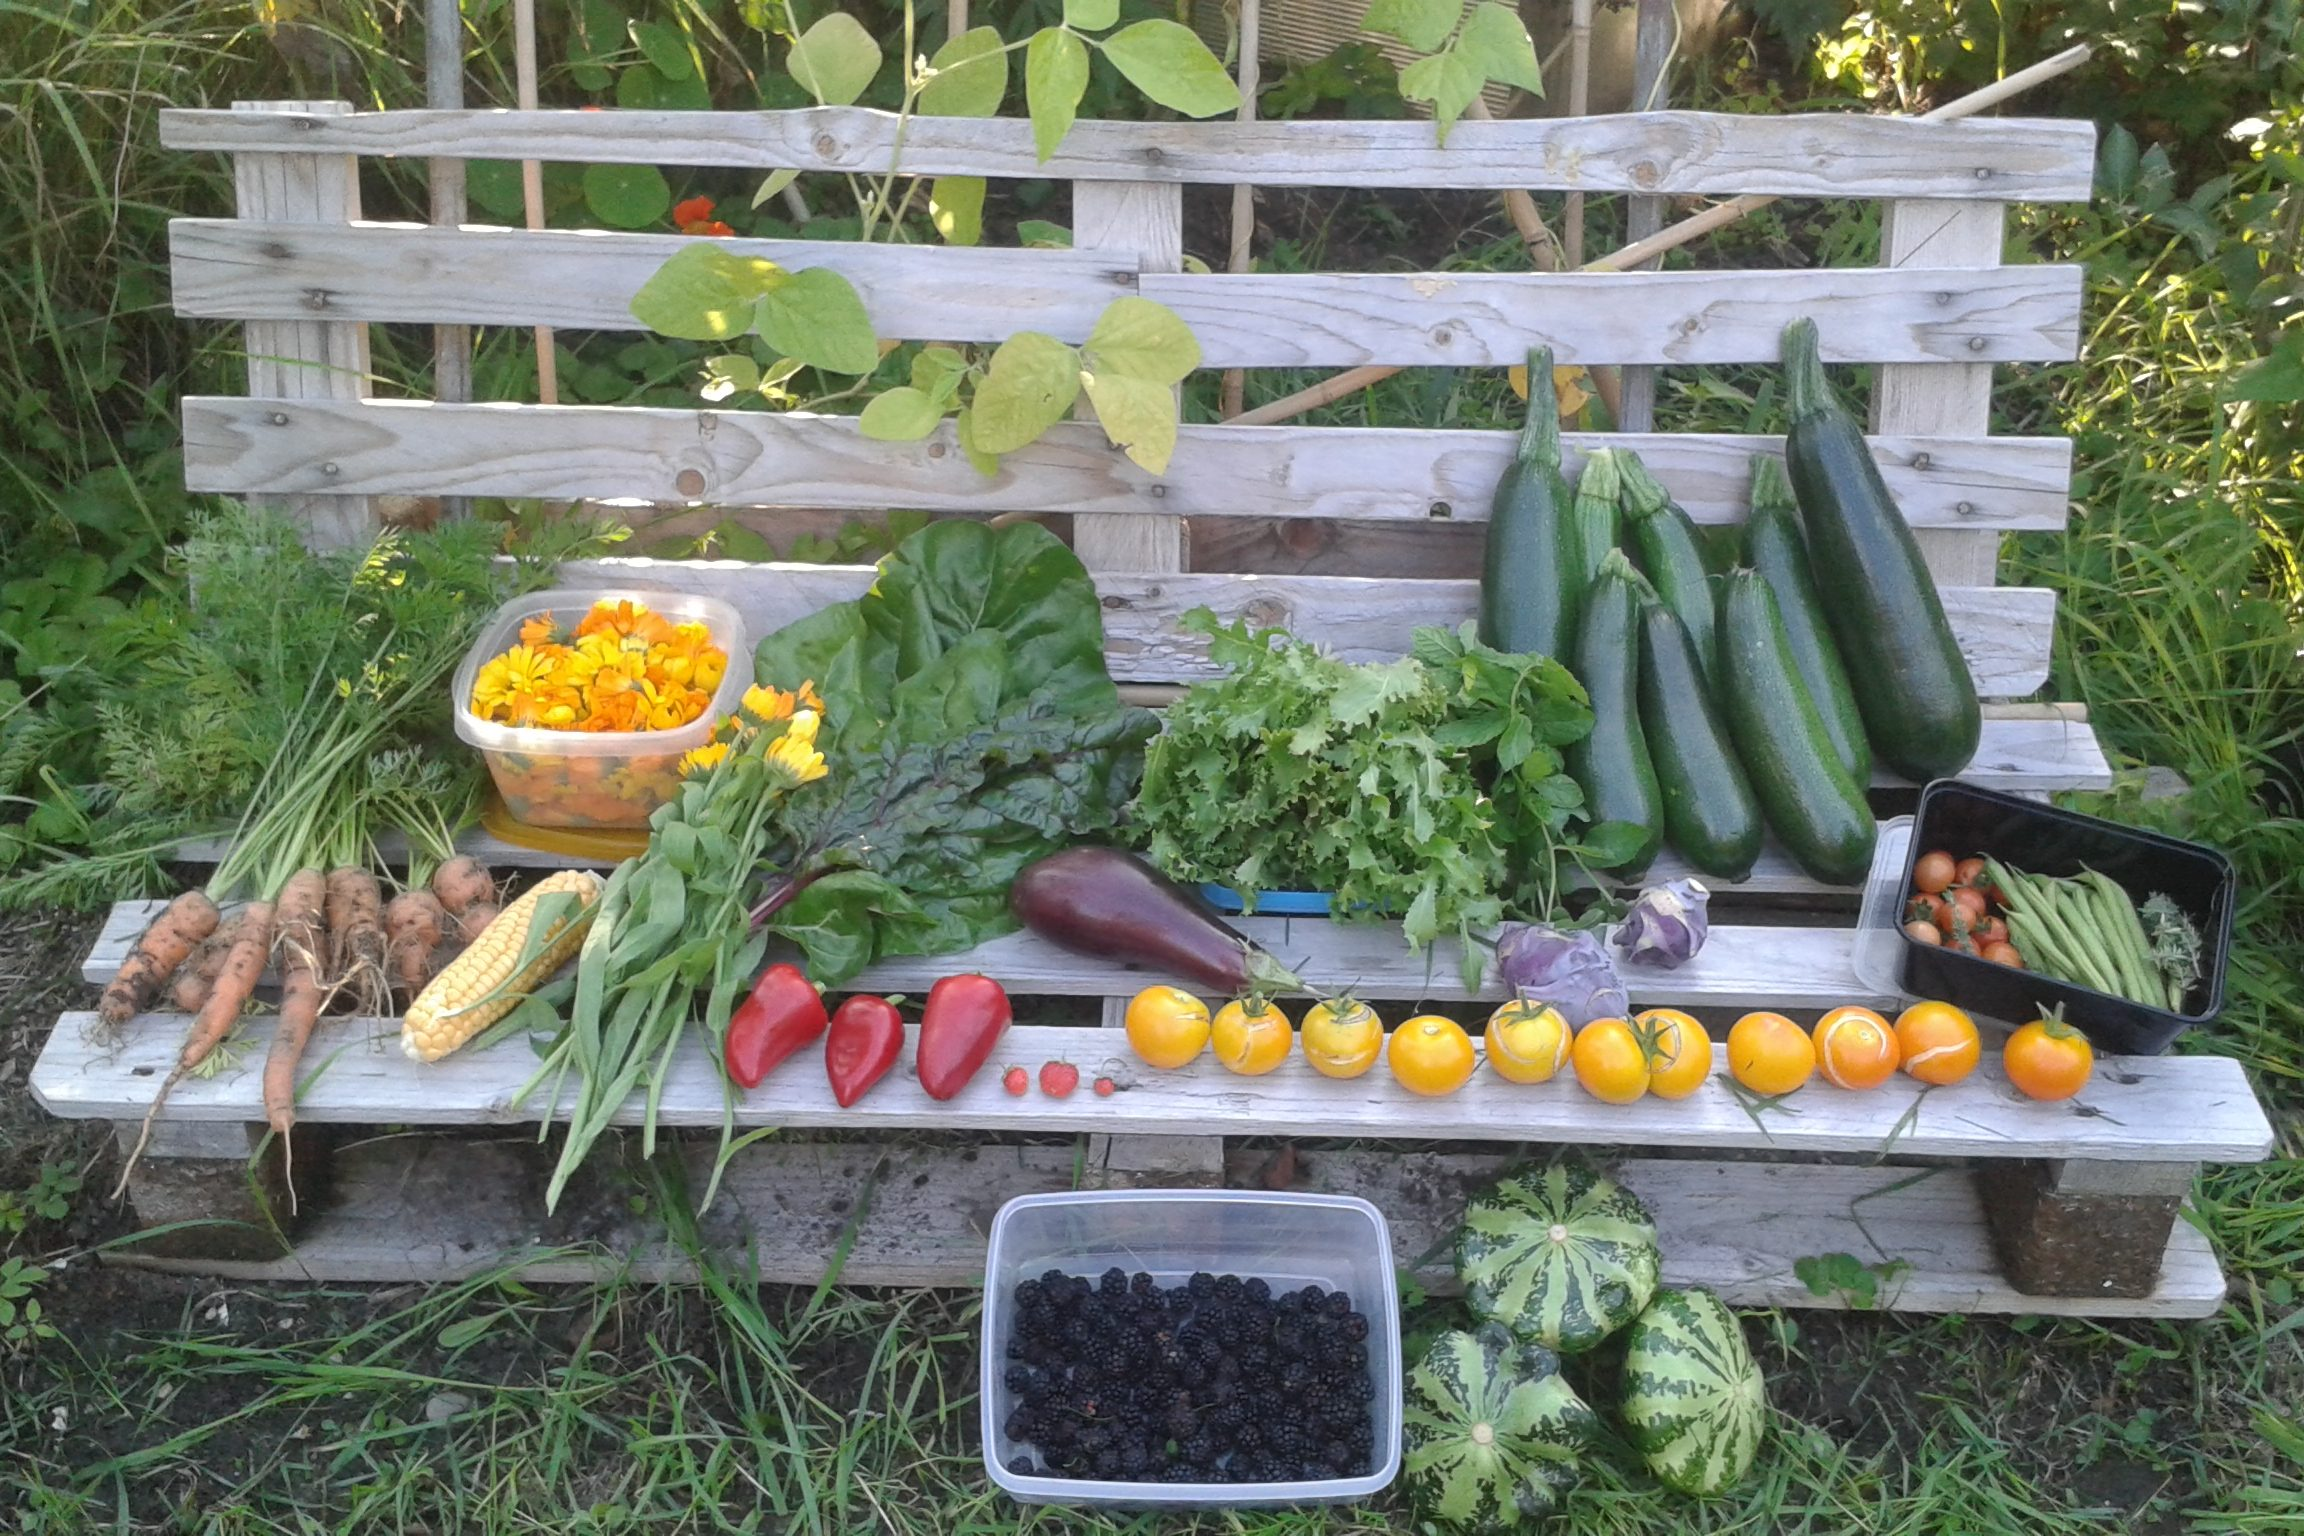 Belated but beloved foods (and harvest!)